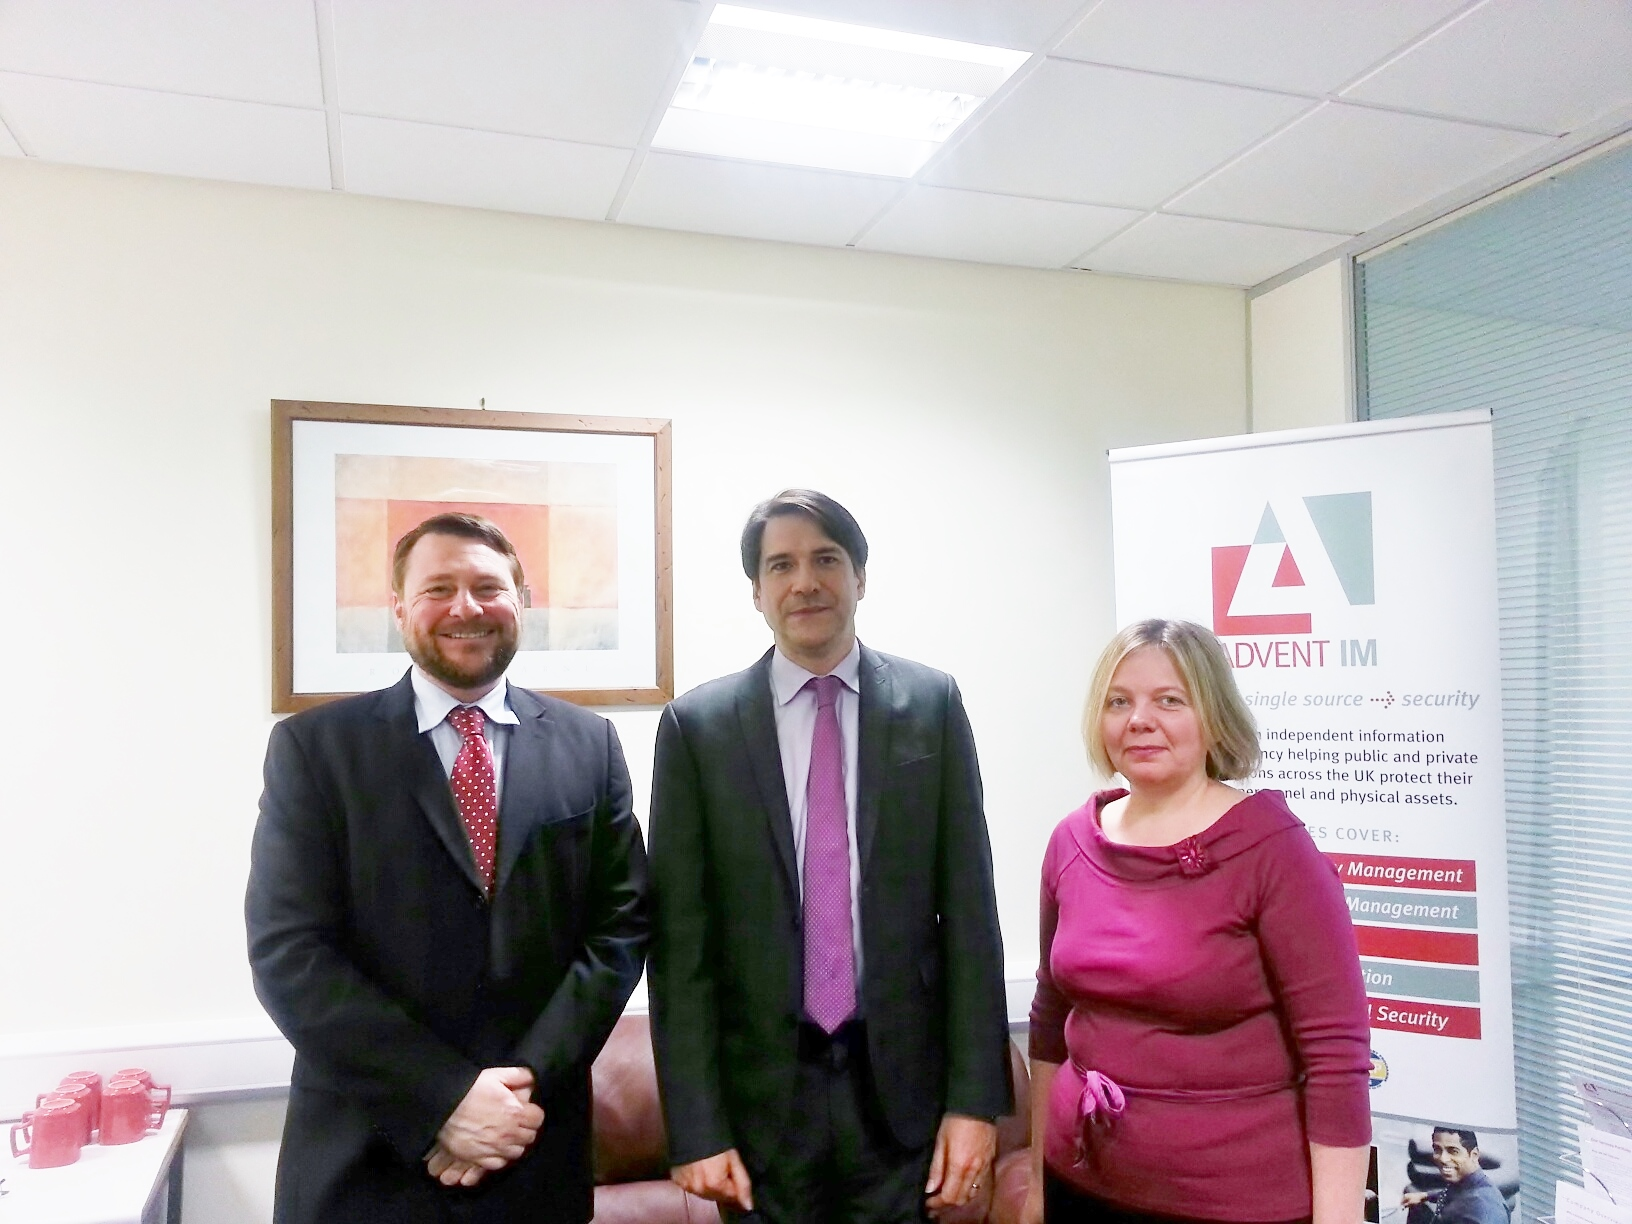 James Morris MP (centre) with Mike Gillespie and Julia McCarron of Advent IM Ltd